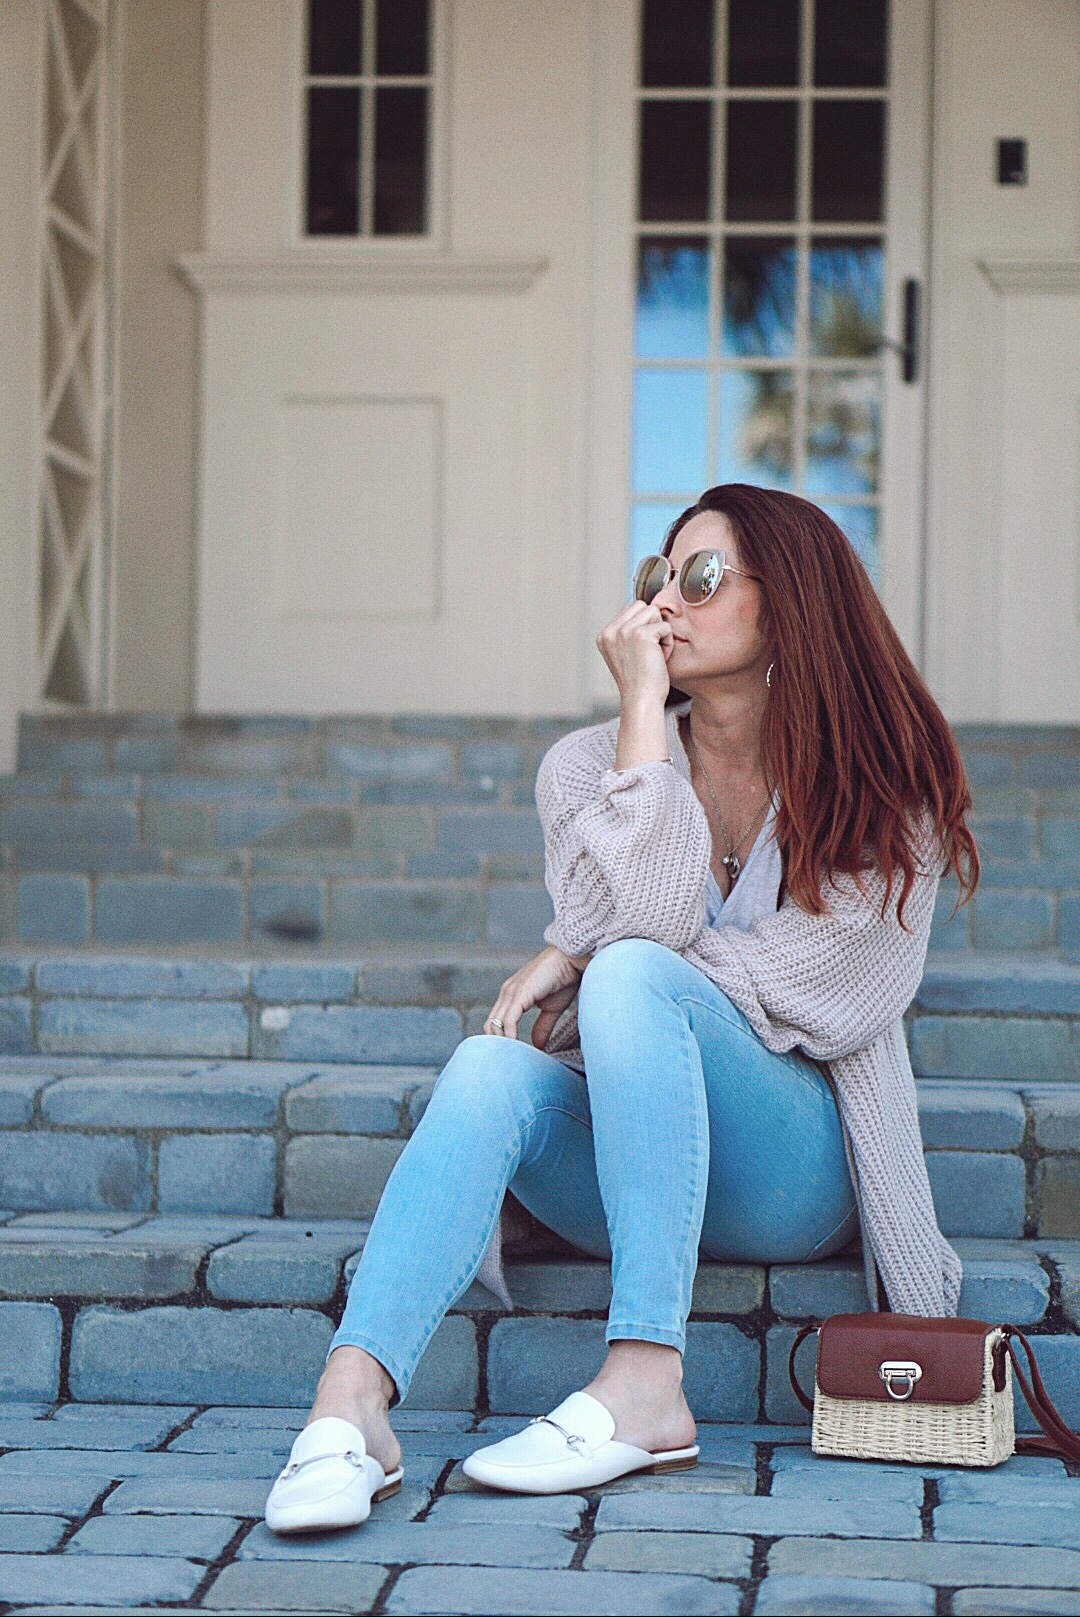 casual style, jeans and cardigan outfits, how to be authentice as a blogger, authentic bloggers, bloggers who are real, white mules, basket bags